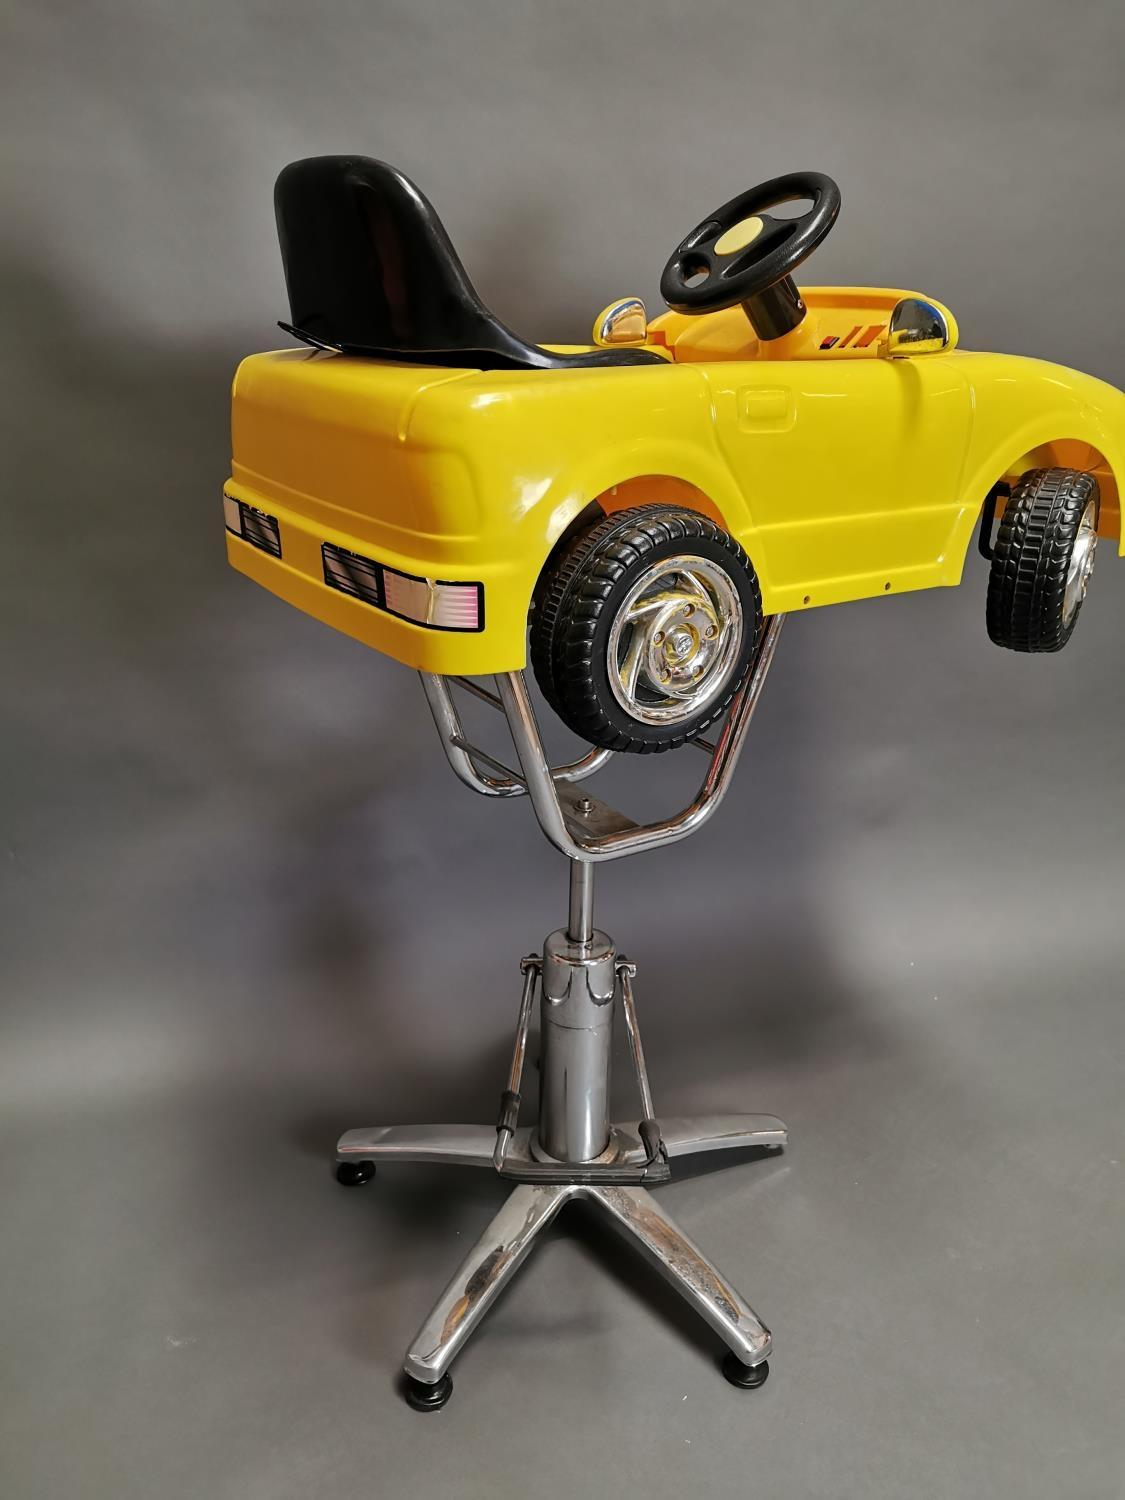 Unusual child's barbers chair - Image 6 of 6